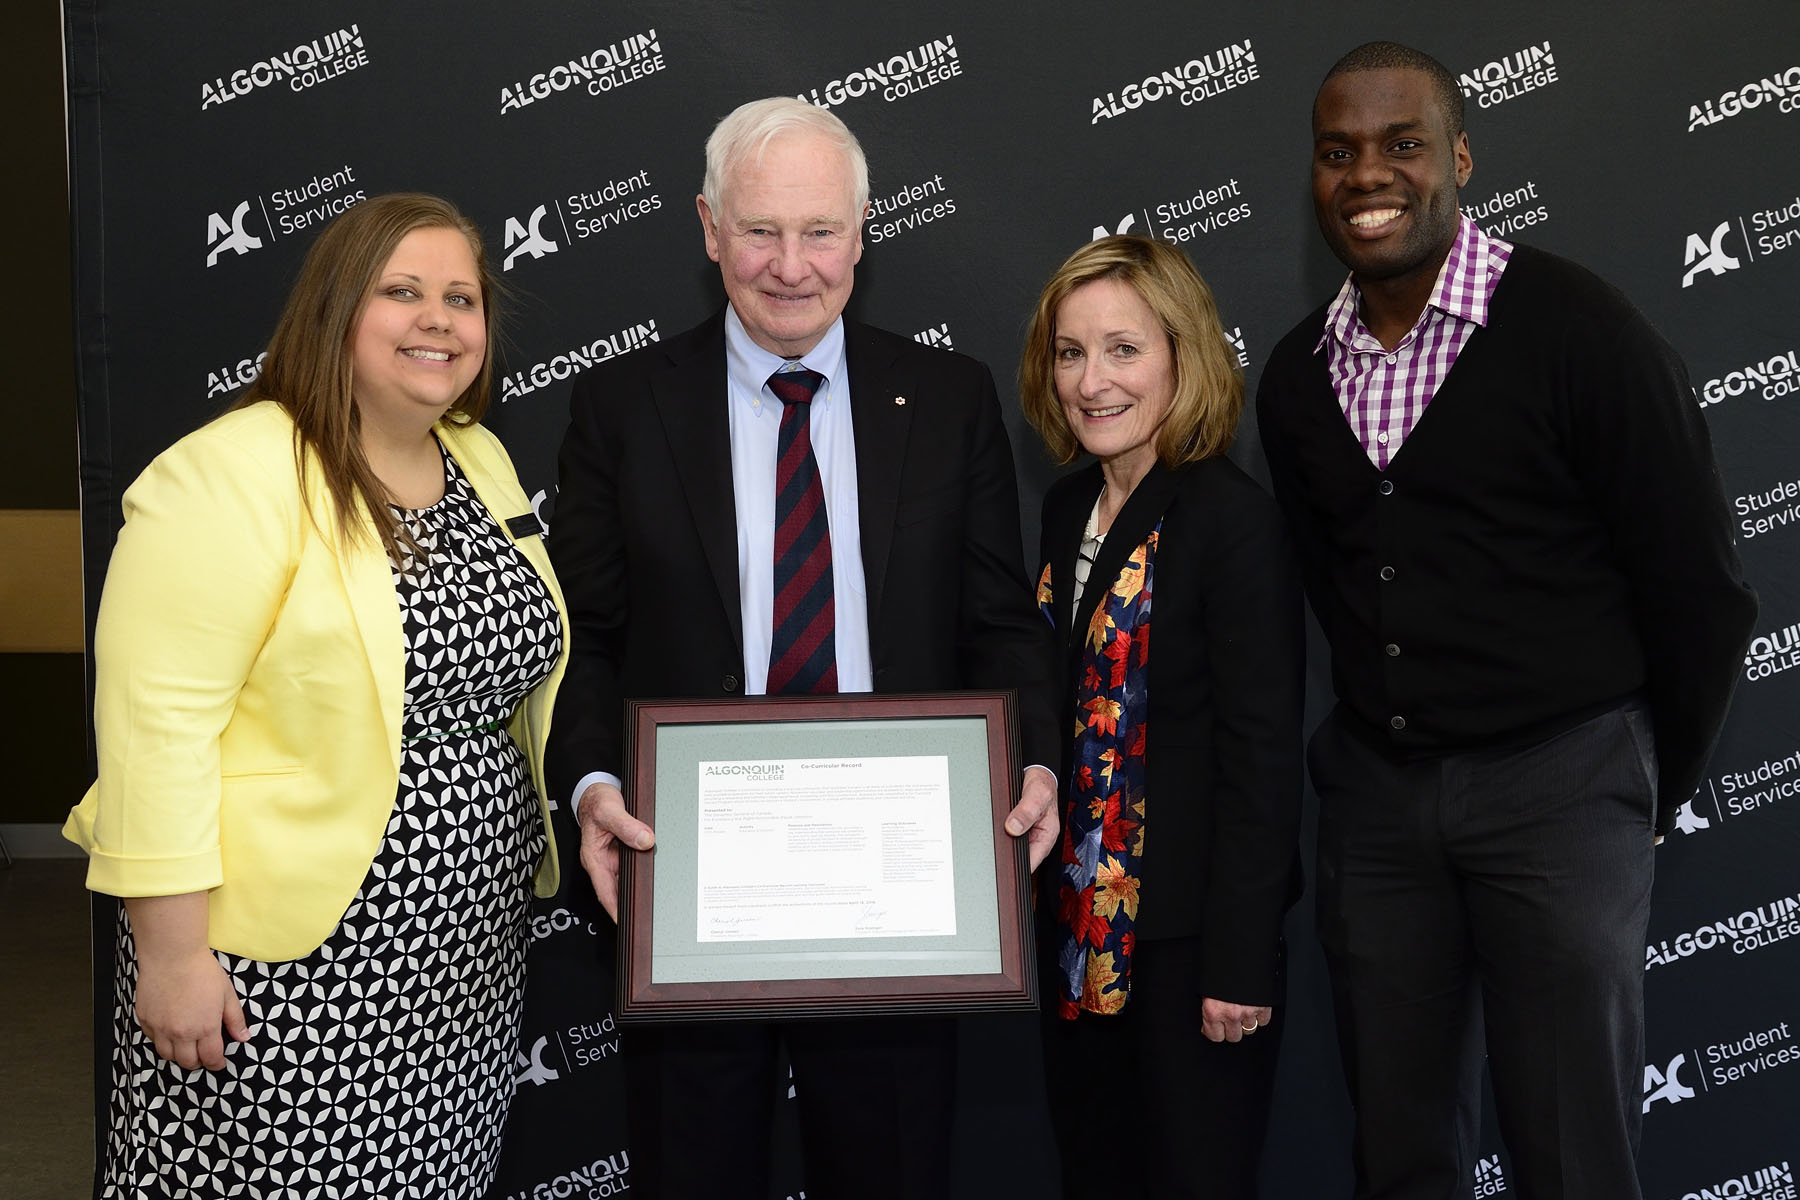 The Governor General was presented with an honorary Co-Curricular Record, acknowledging his volunteer contributions.